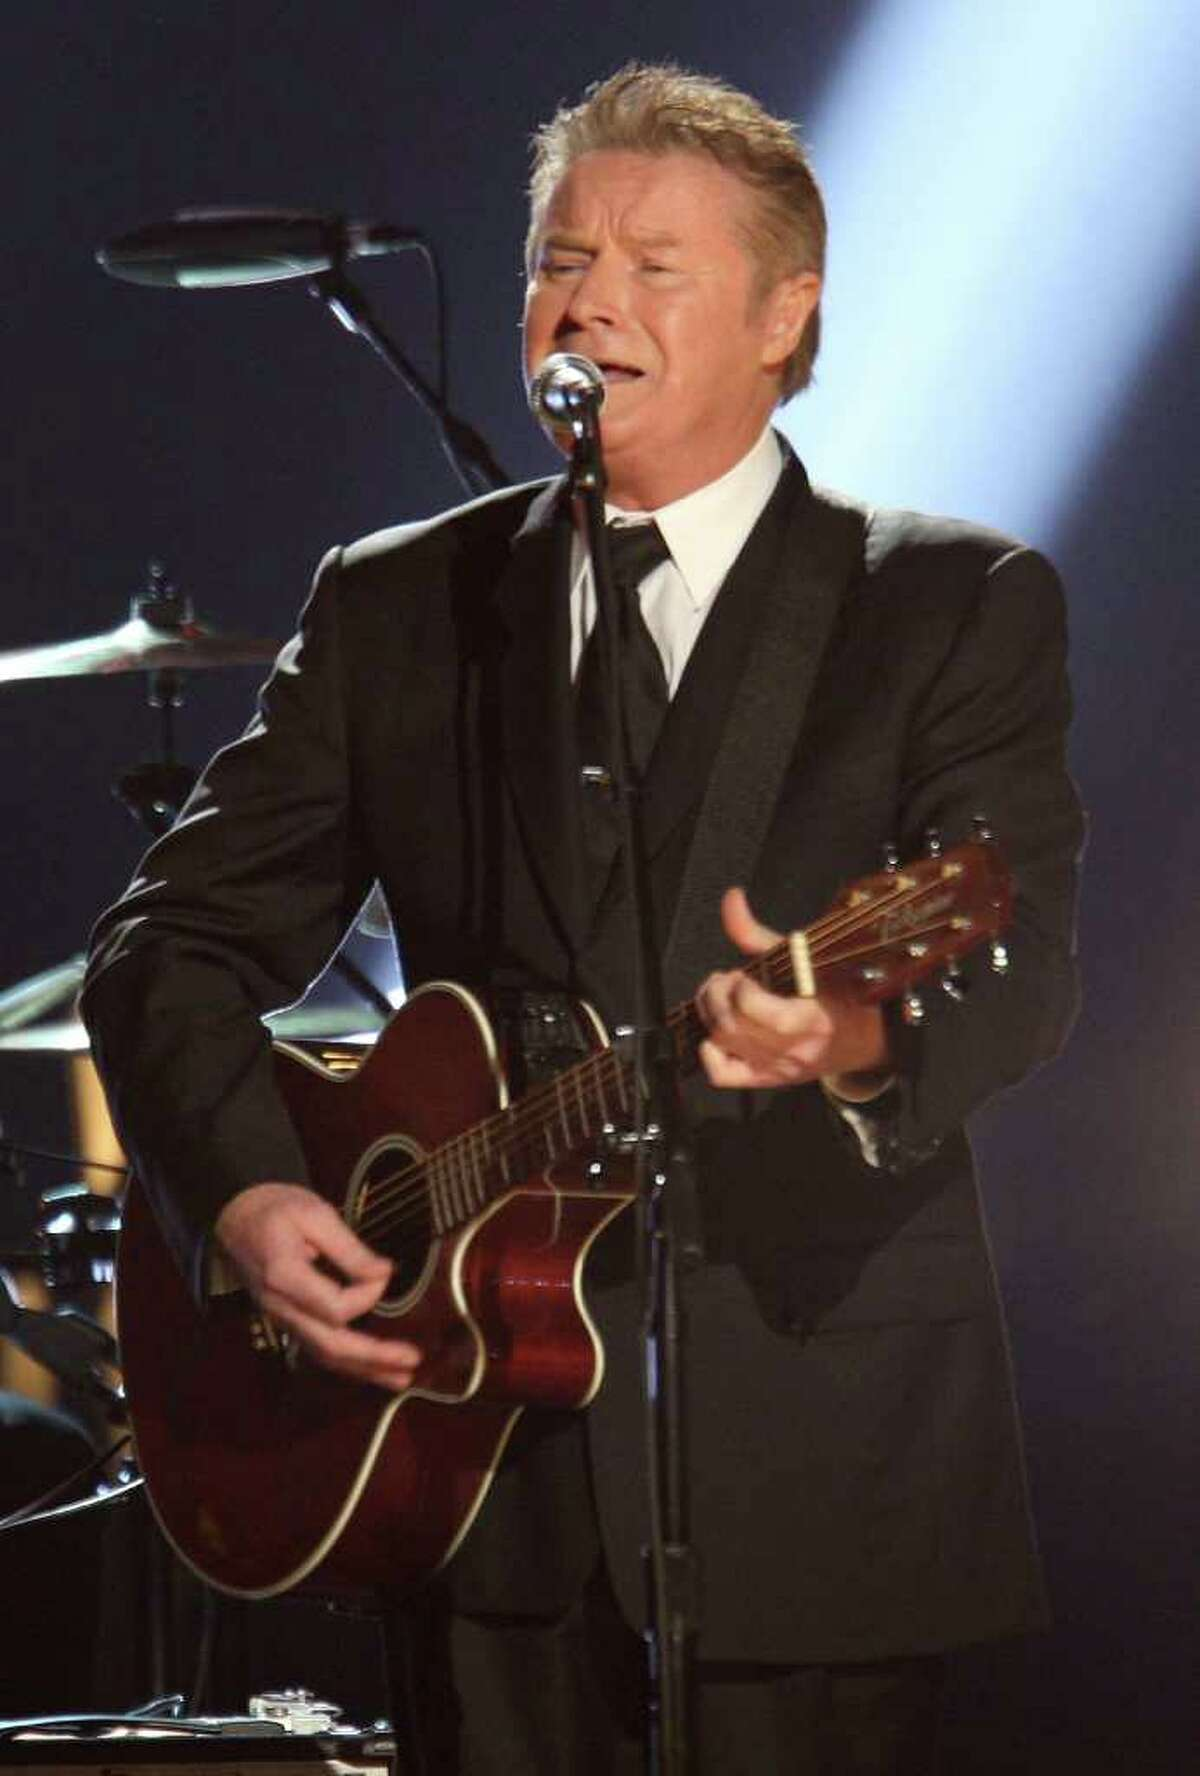 Singer Don Henley of The Eagles is coming to Houston. Keep clicking for a look at other big name concerts coming to the Houston area.